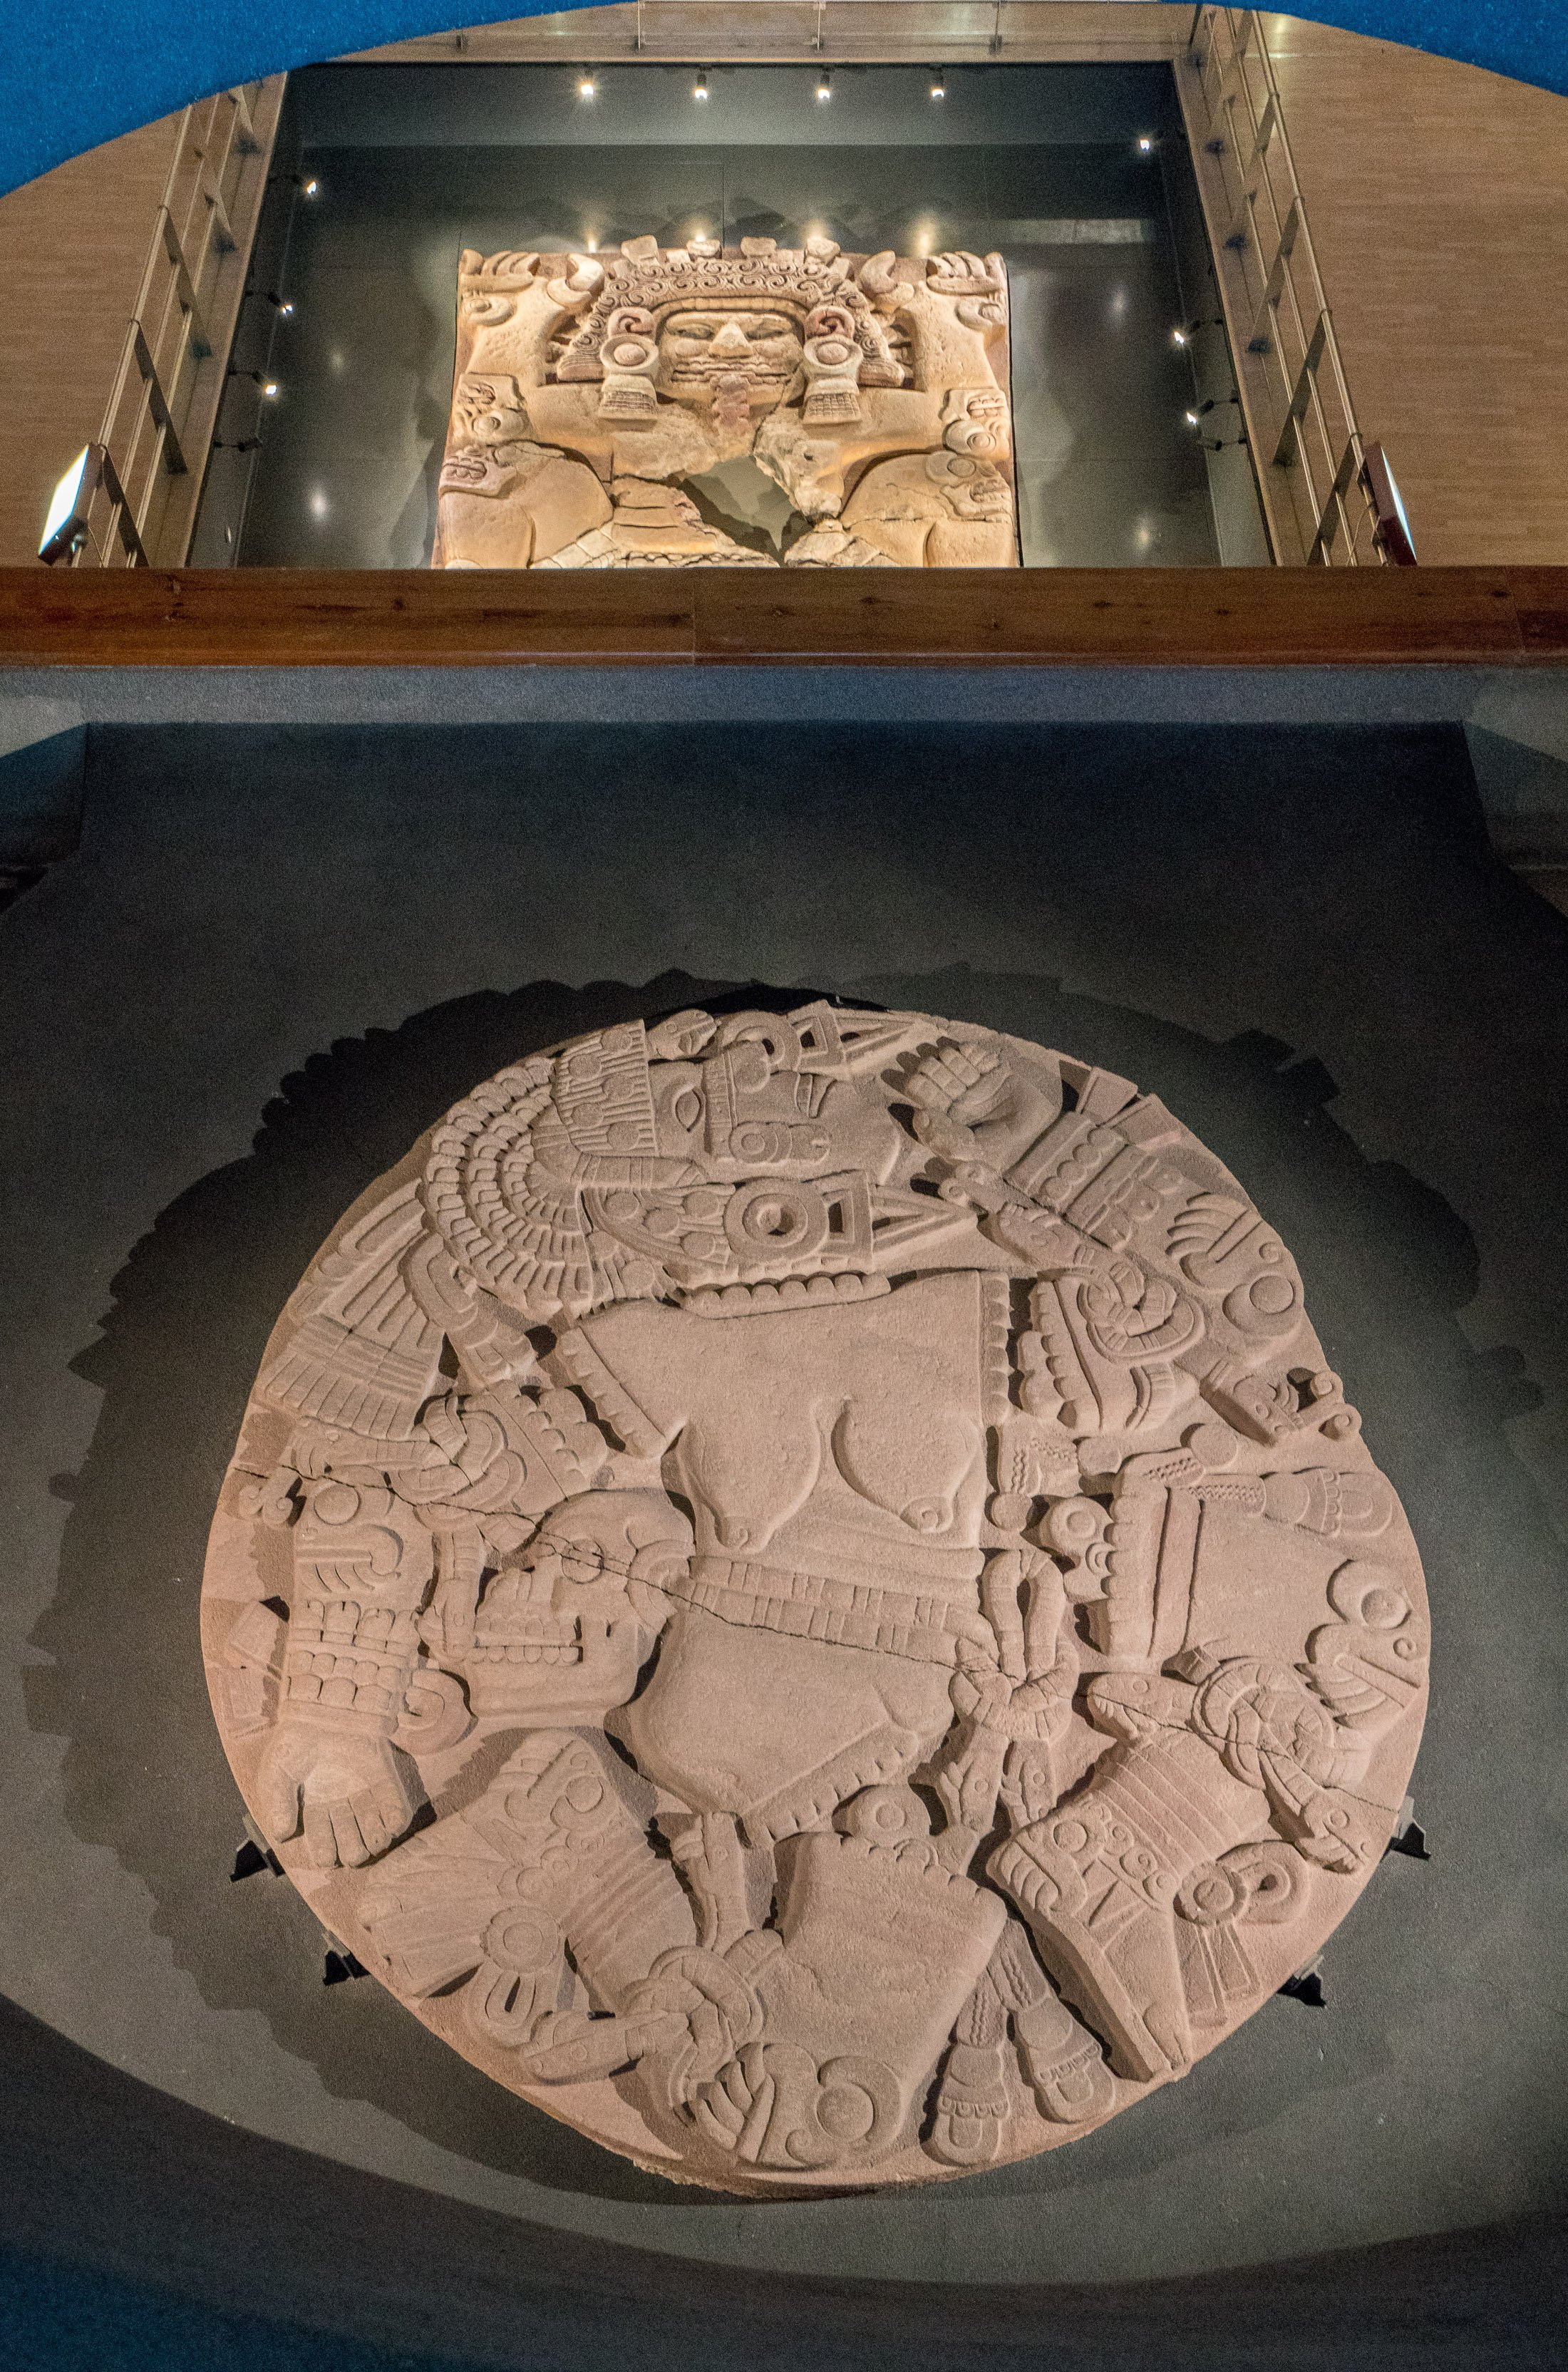 A disk featuring Coyolxauhqui, Huitzilopochtli's sister, inside Museo del Templo Mayor in Mexico City